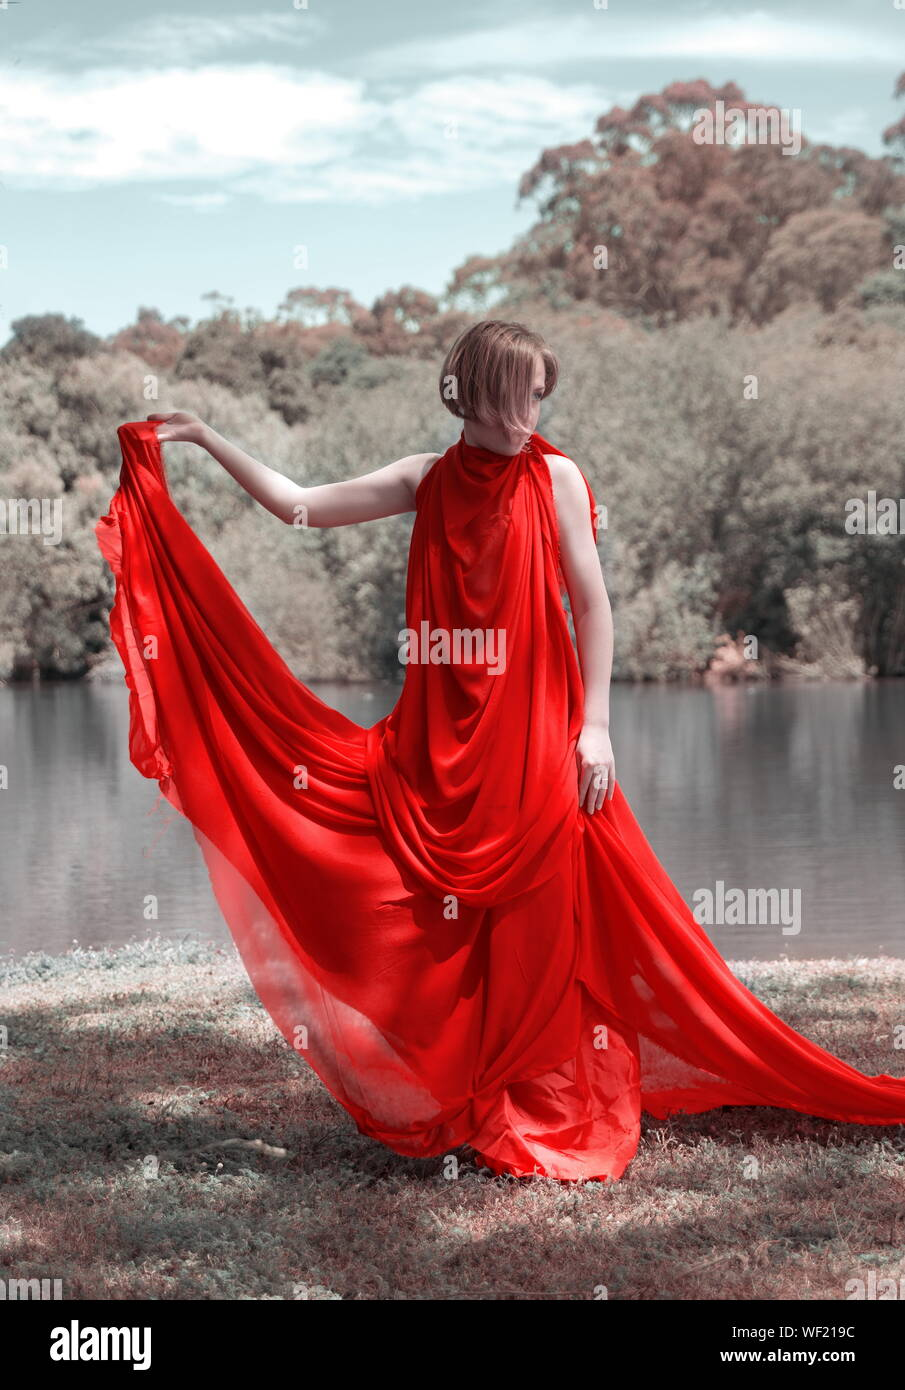 Woman Covered In Red Dress Standing At Lakeshore Stock Photo